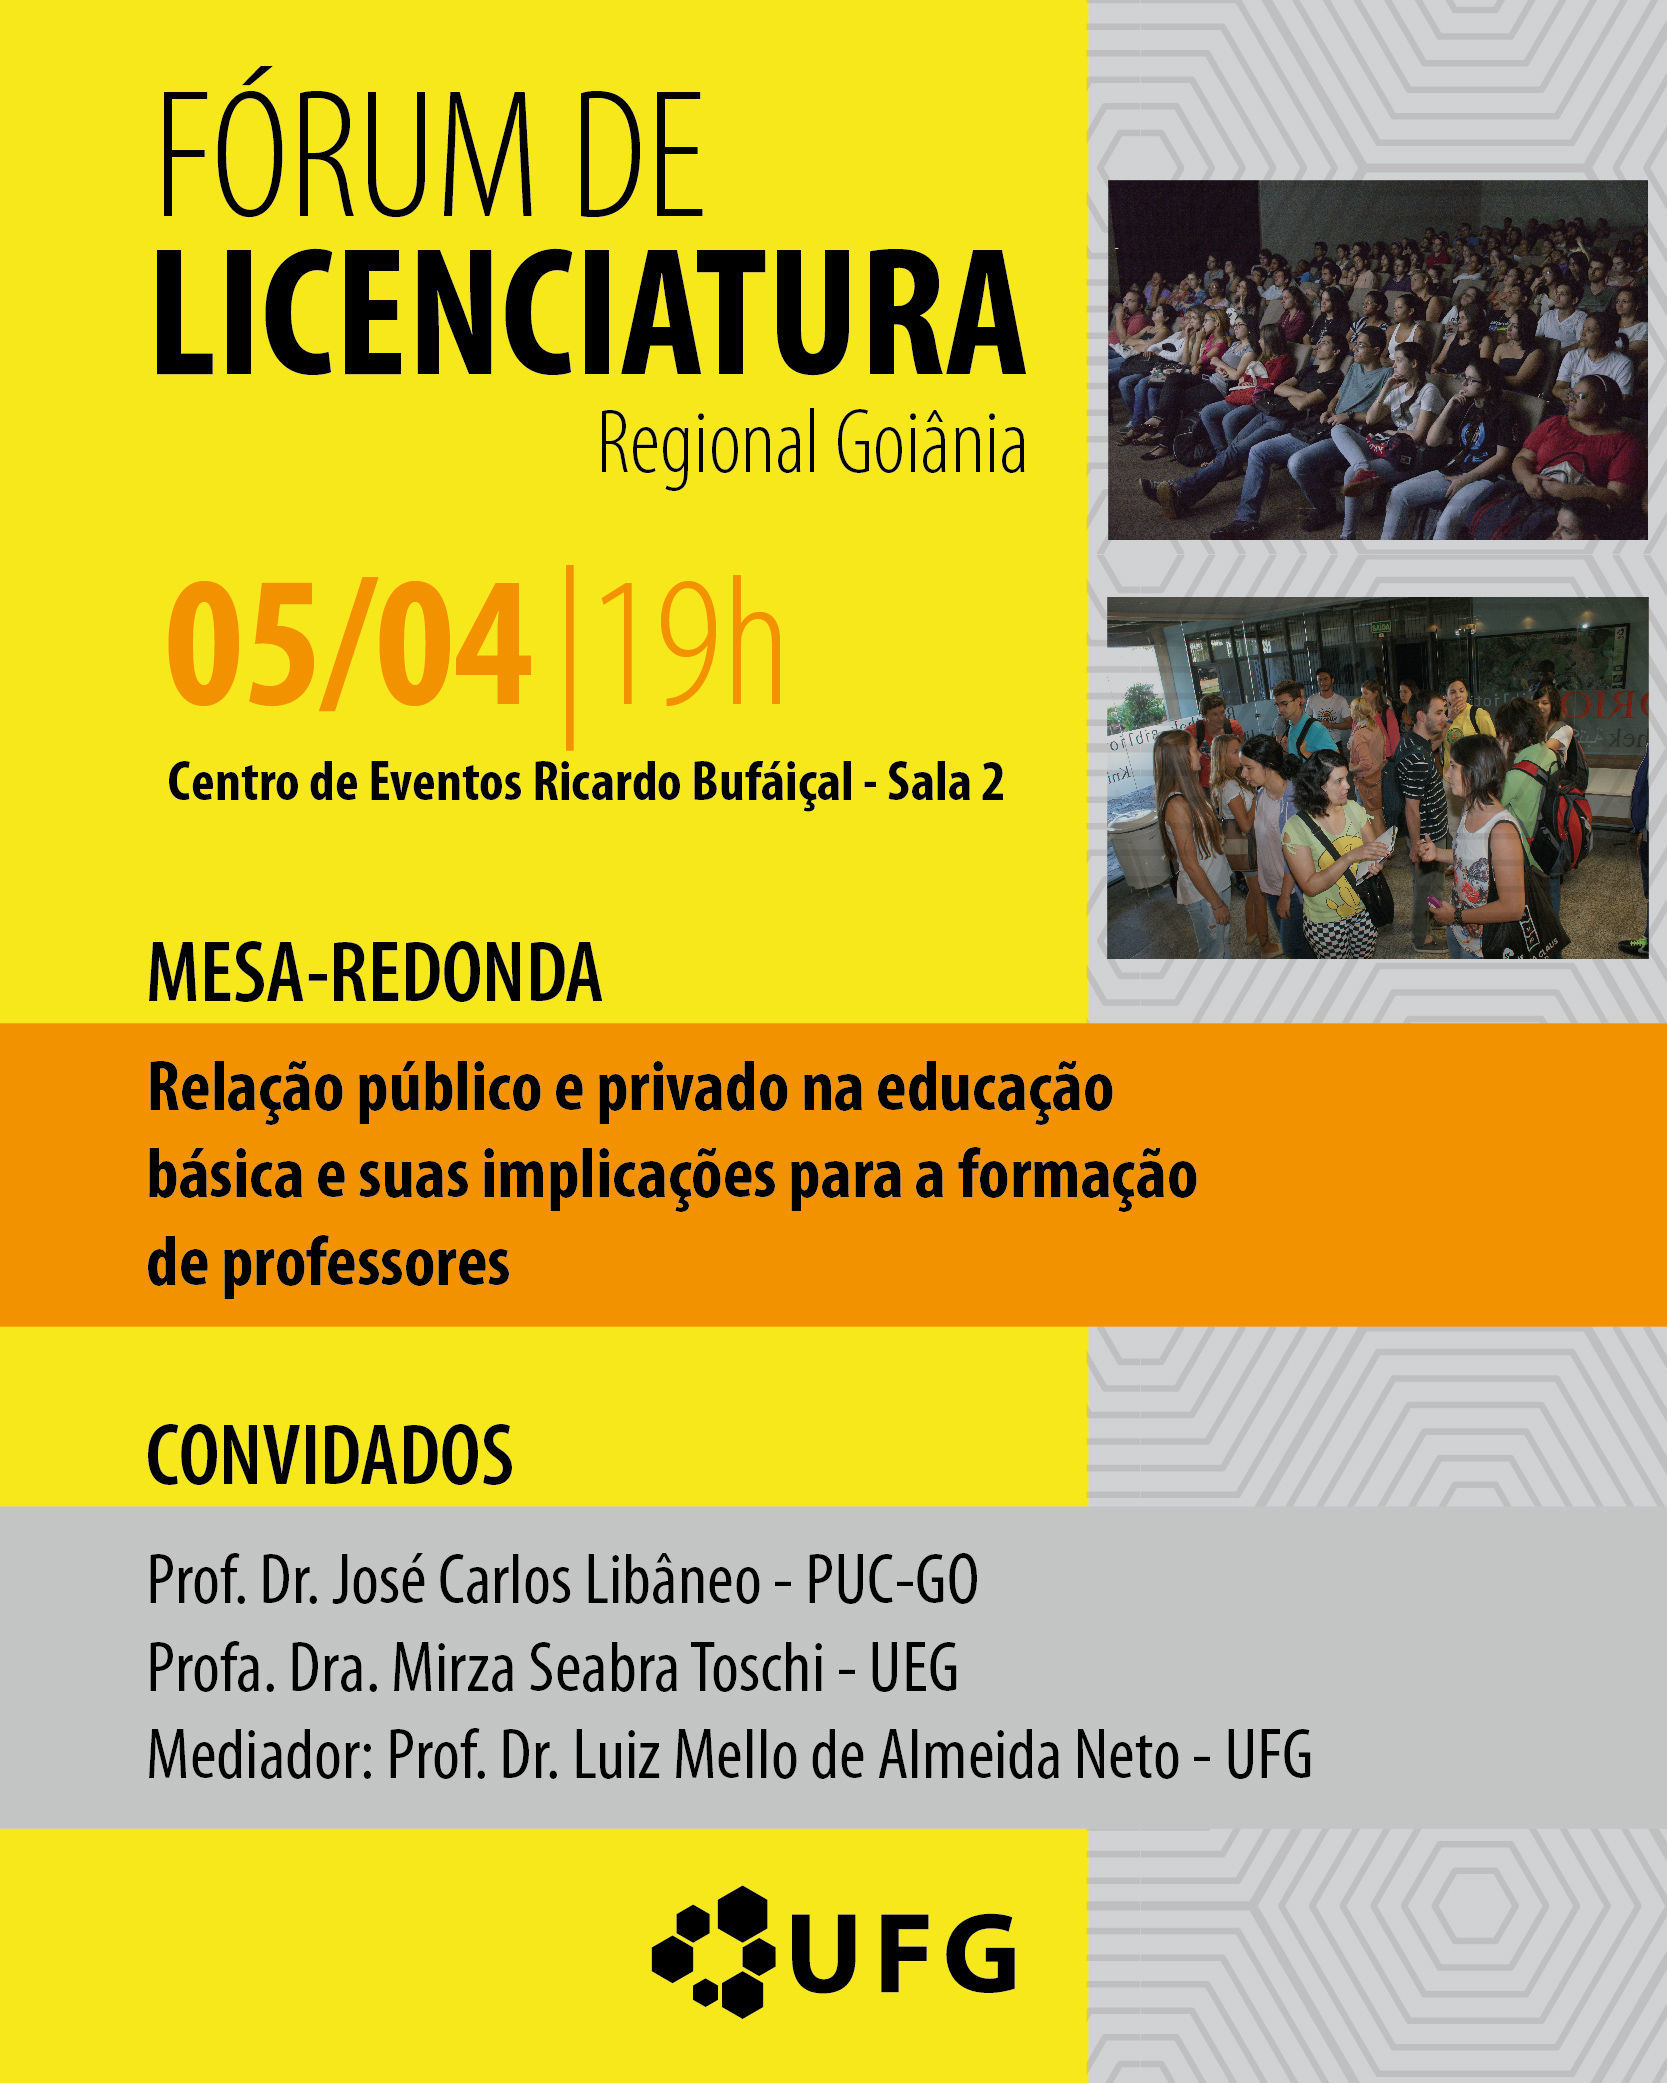 Forum_de_licenciatura-01